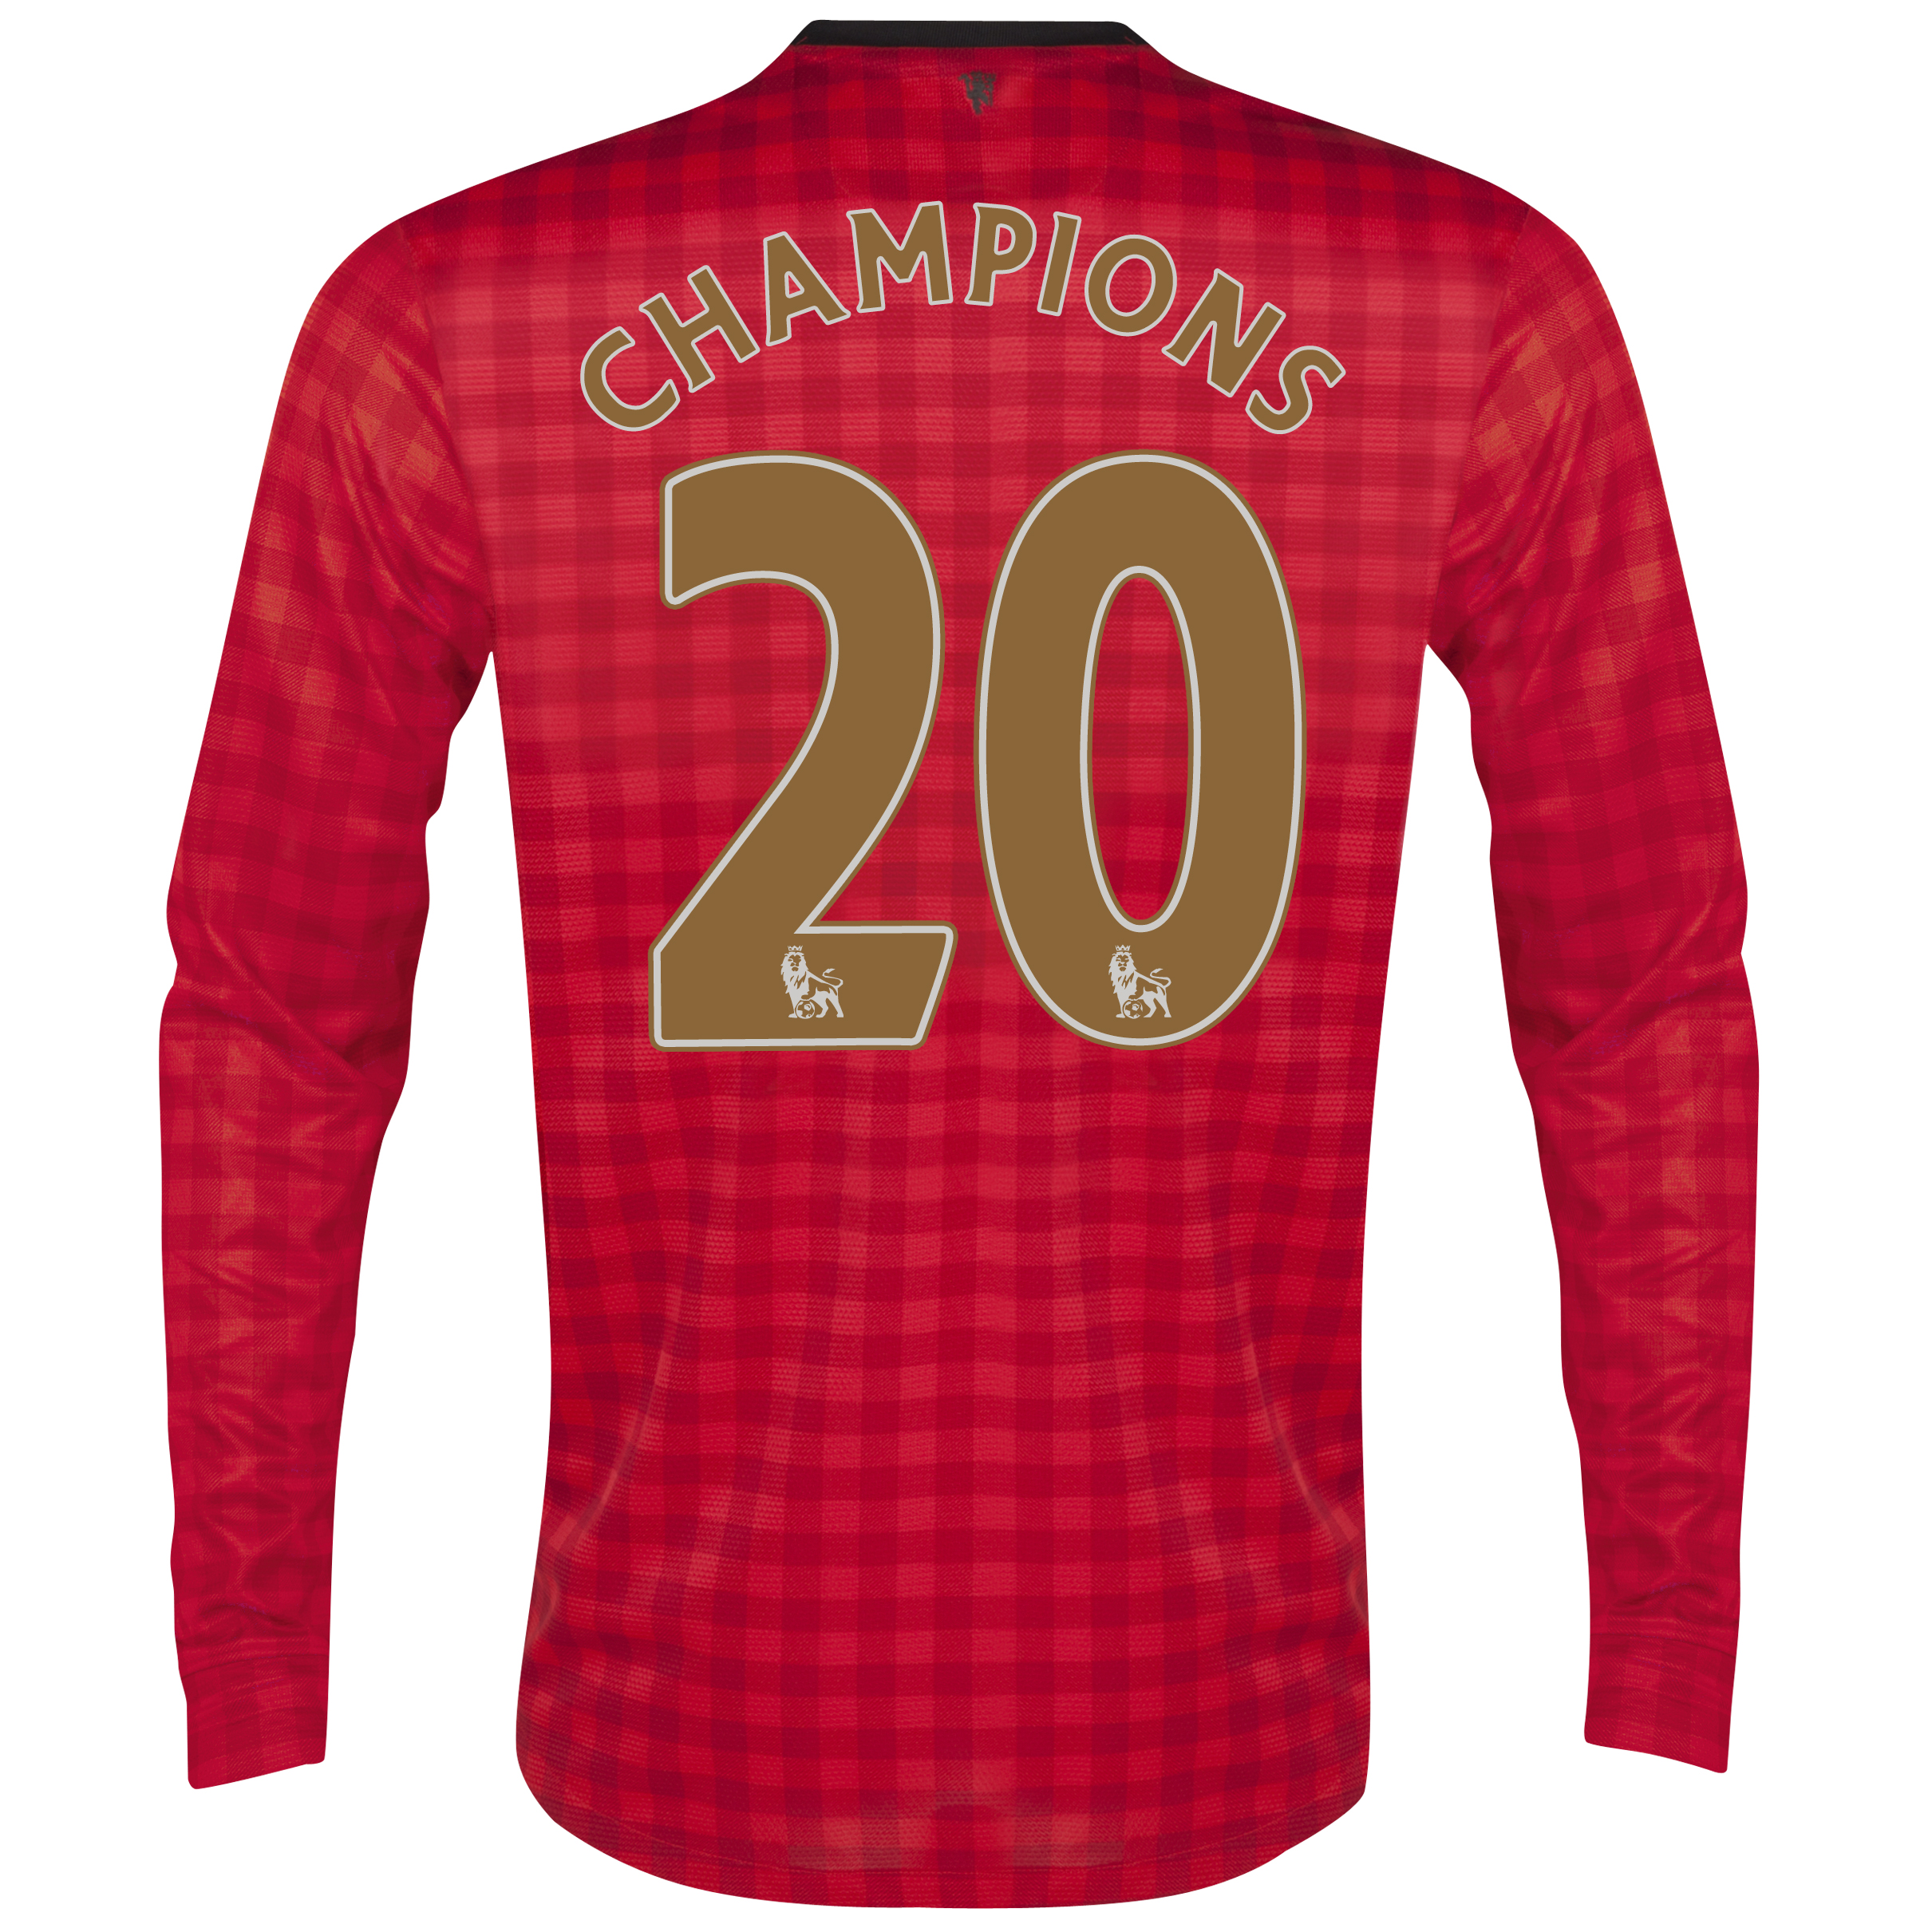 Manchester United Home Shirt 2012/13 - Long Sleeved with Champions 20 printing